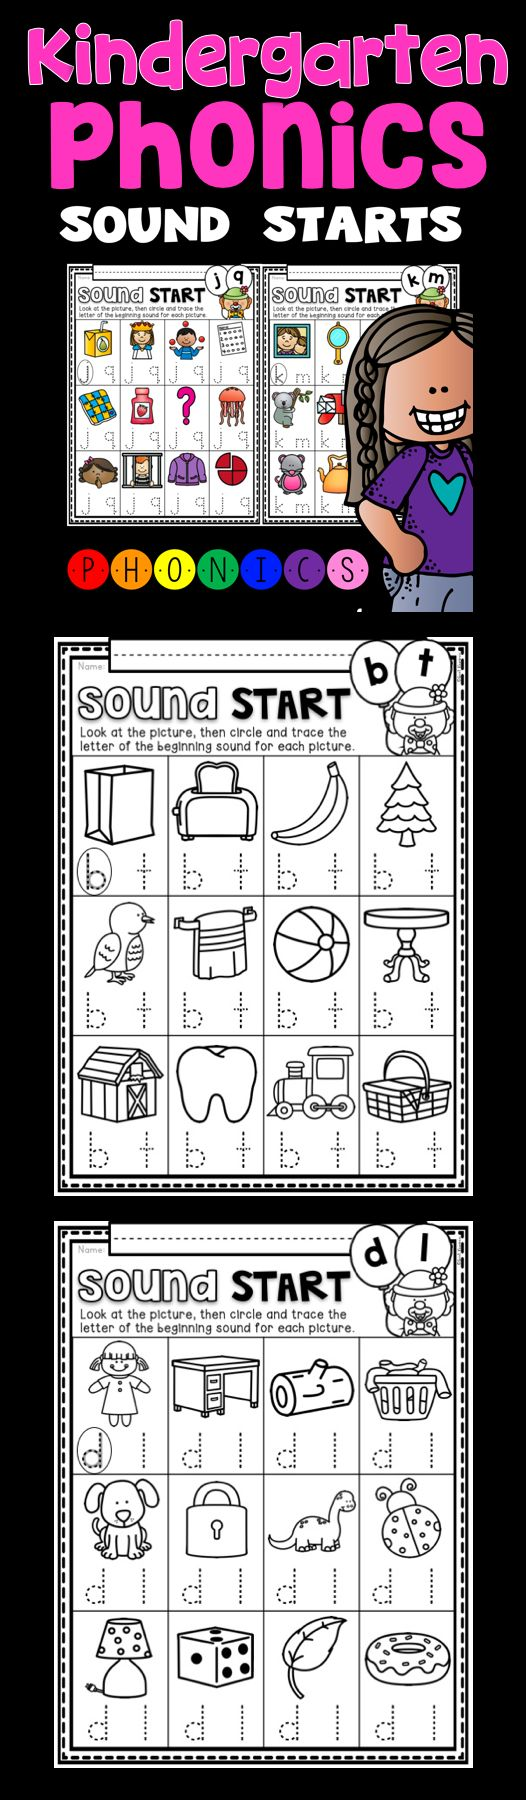 Kindergarten Phonics Activities! For this activity, students are asked to identify the beginning sound by circling, then tracing the beginning sound that matches the picture. These printables are perfect for your literacy stations, homework or review work.